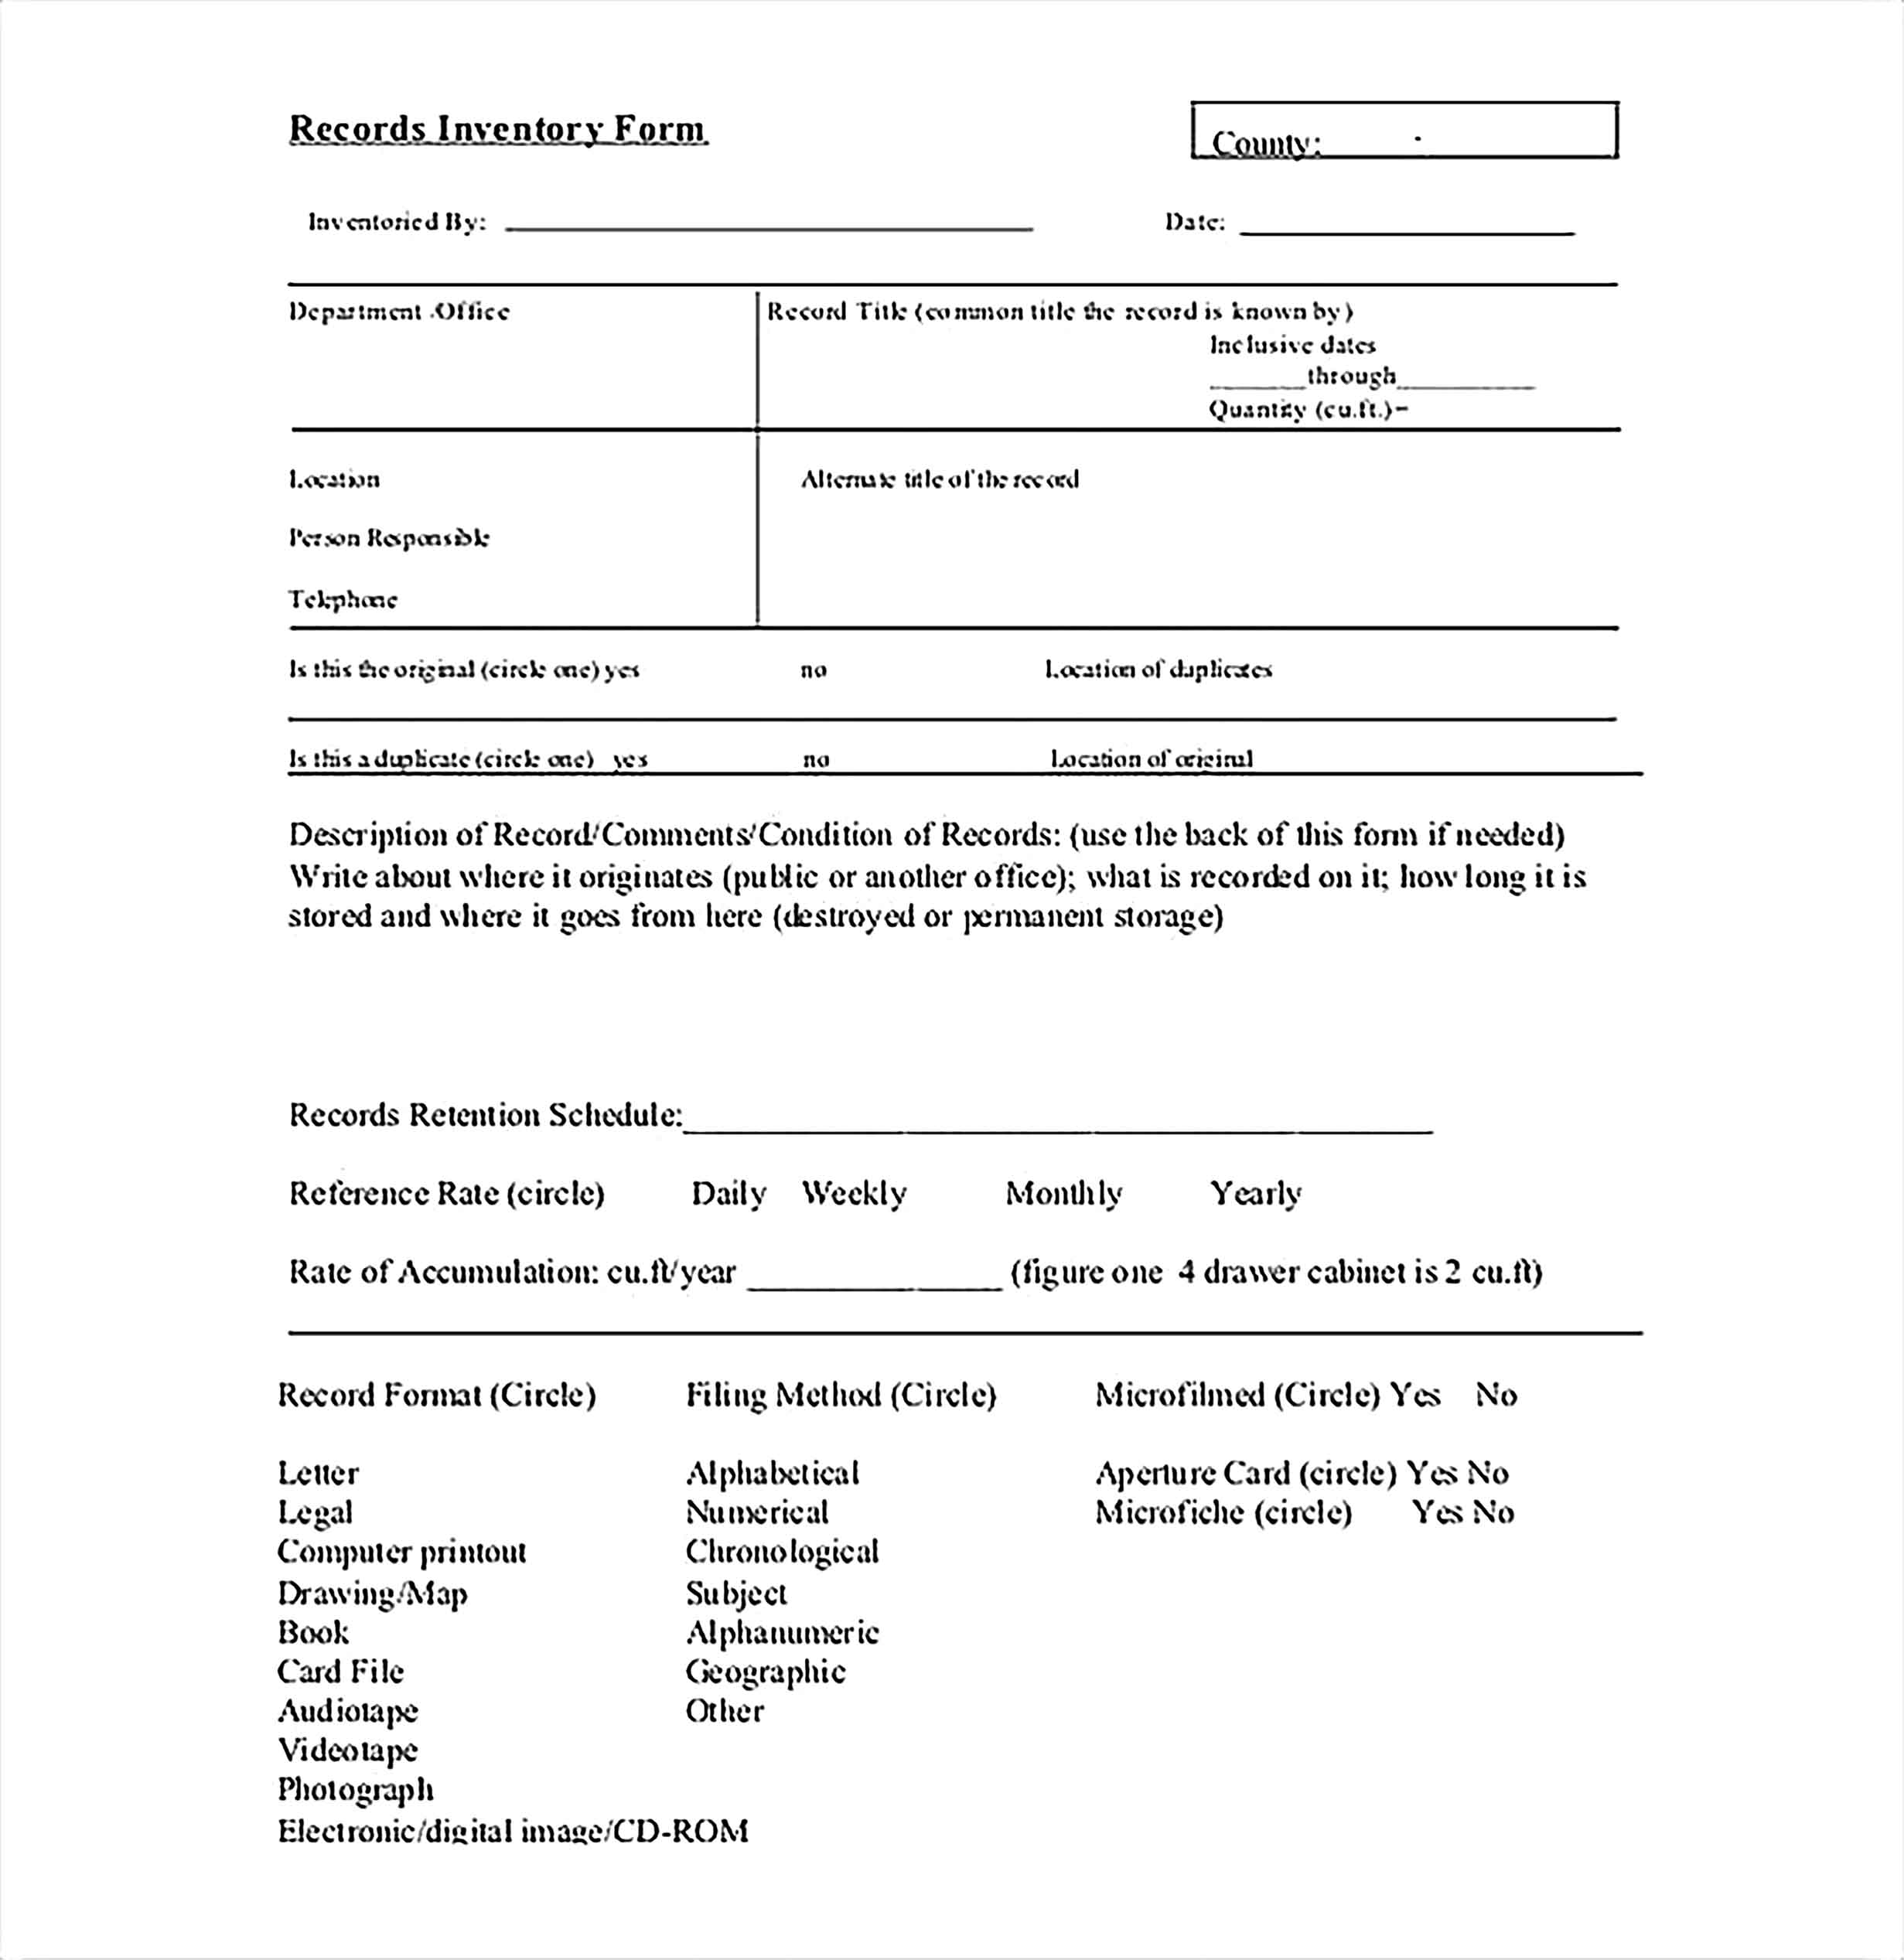 Records Inventory Form Sample